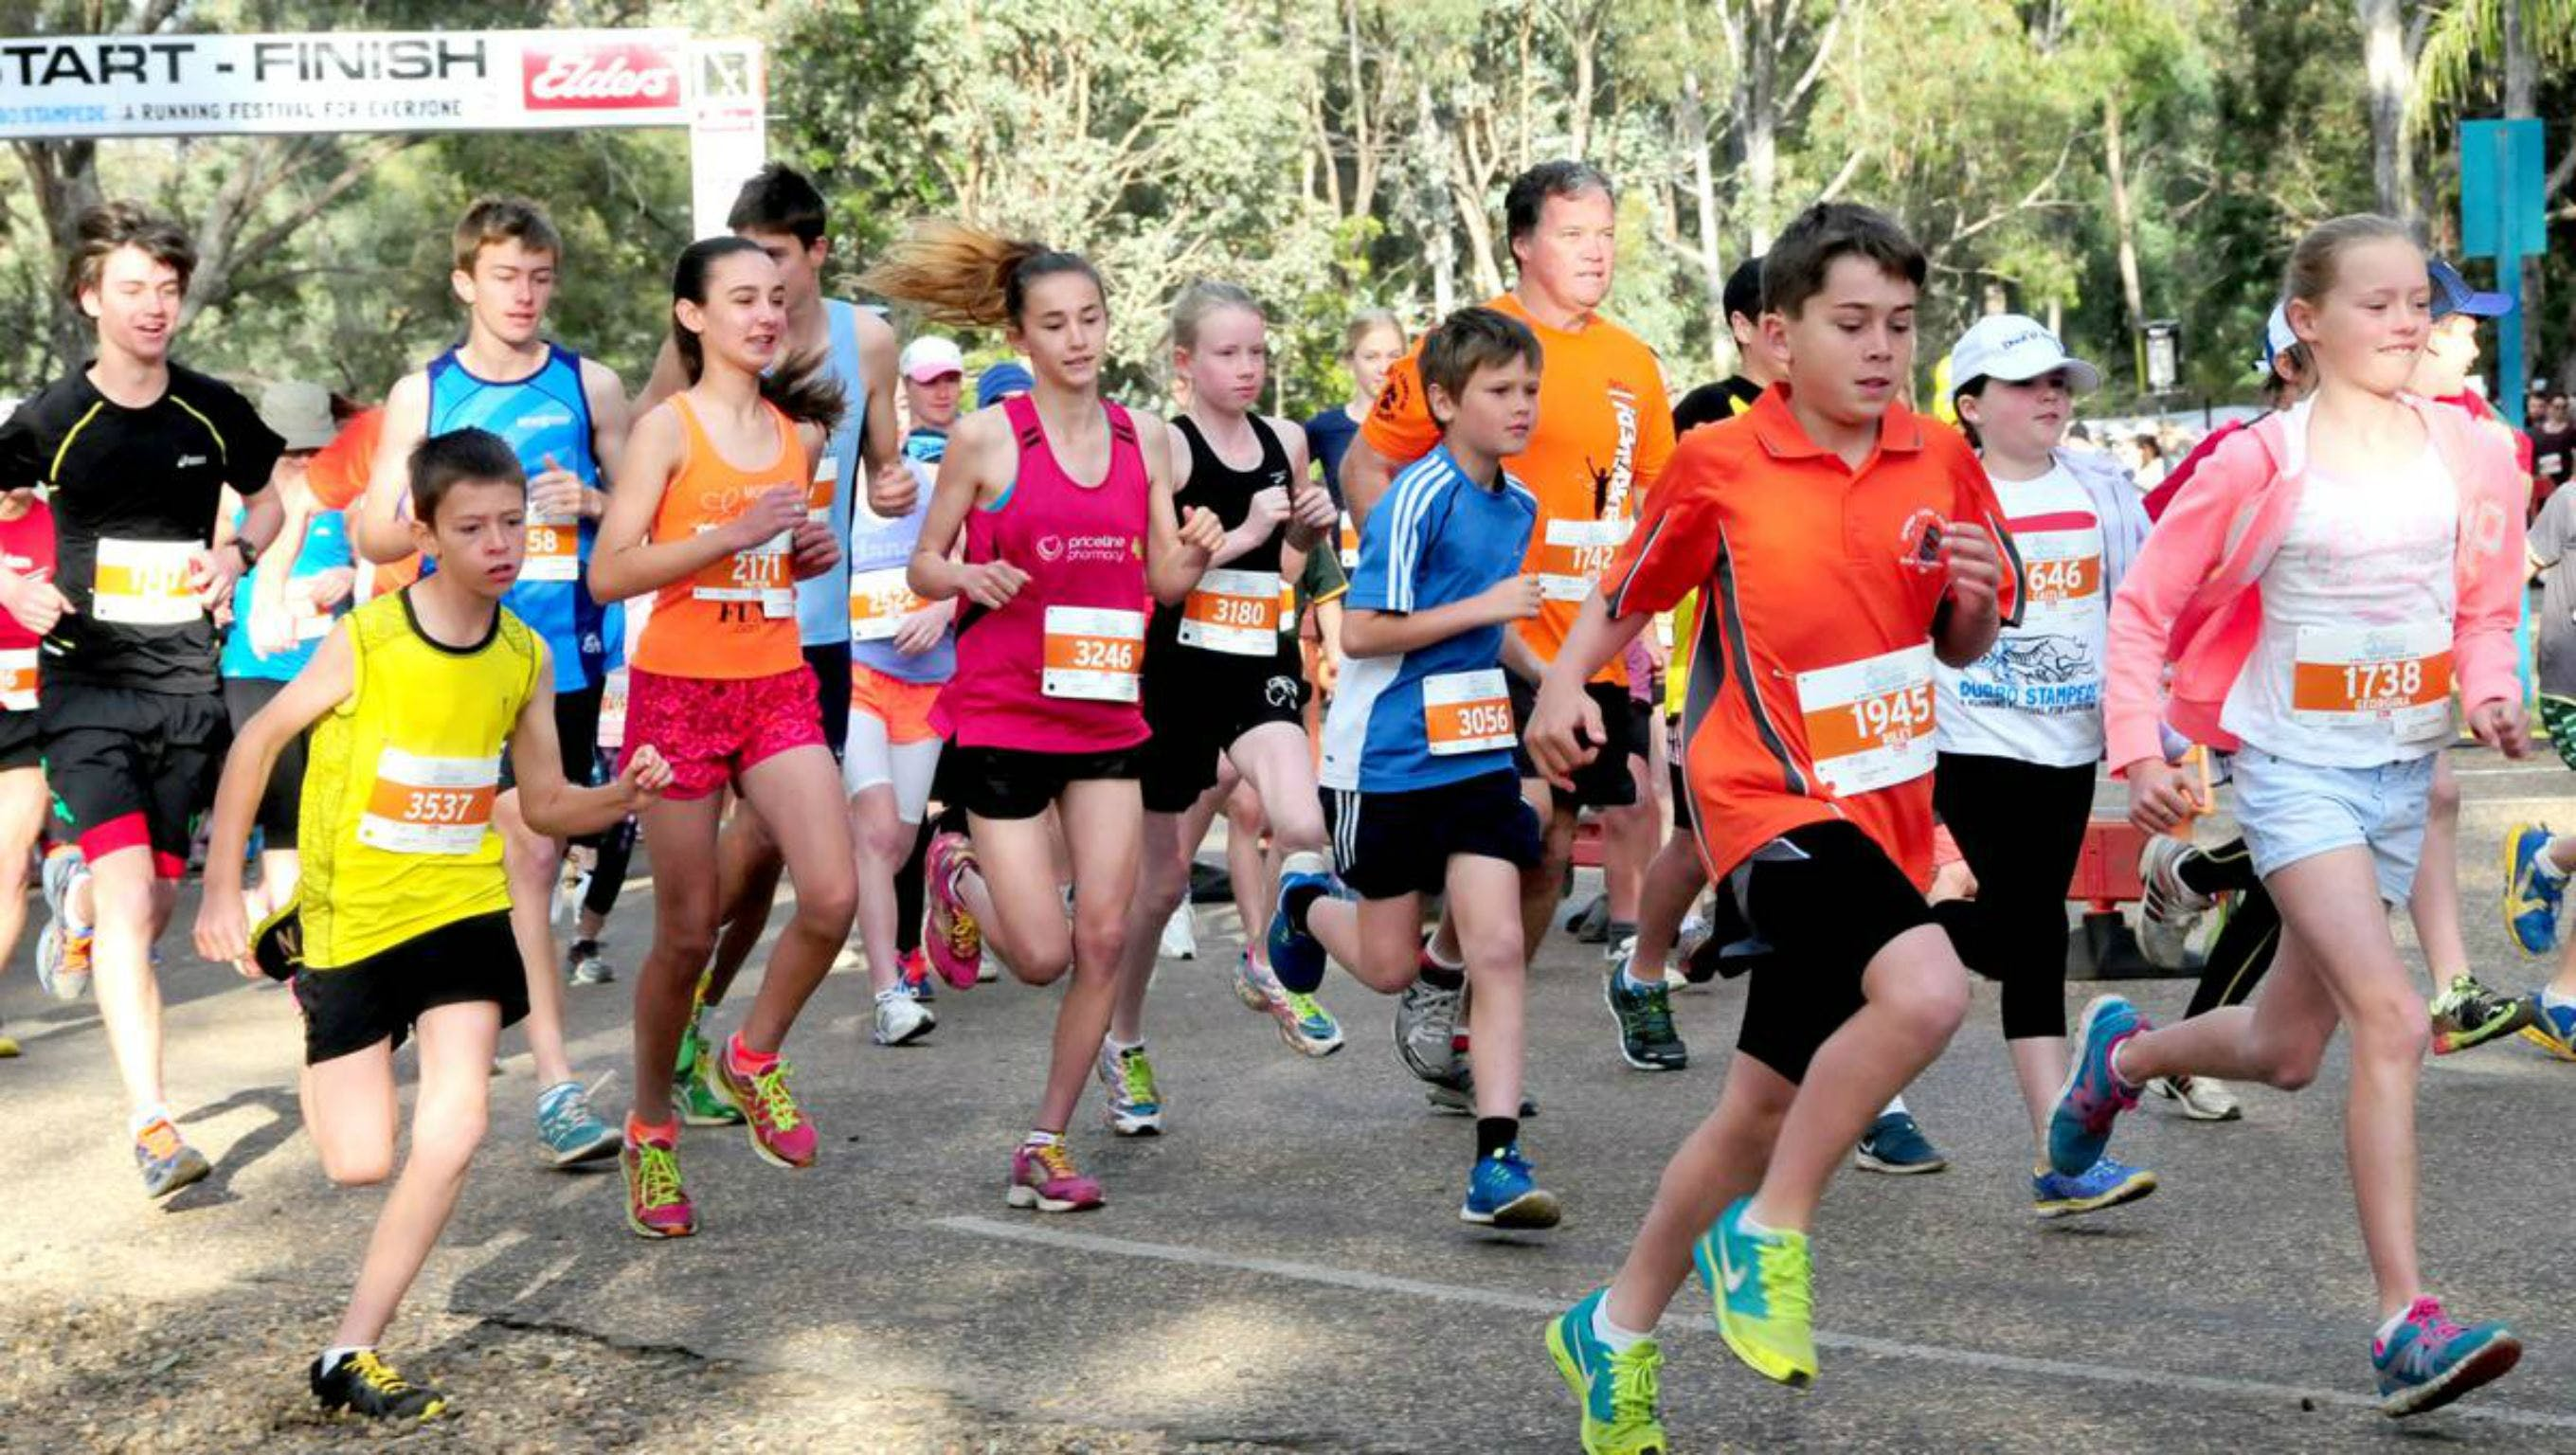 MAAS Group Dubbo Stampede Running Festival - Townsville Tourism